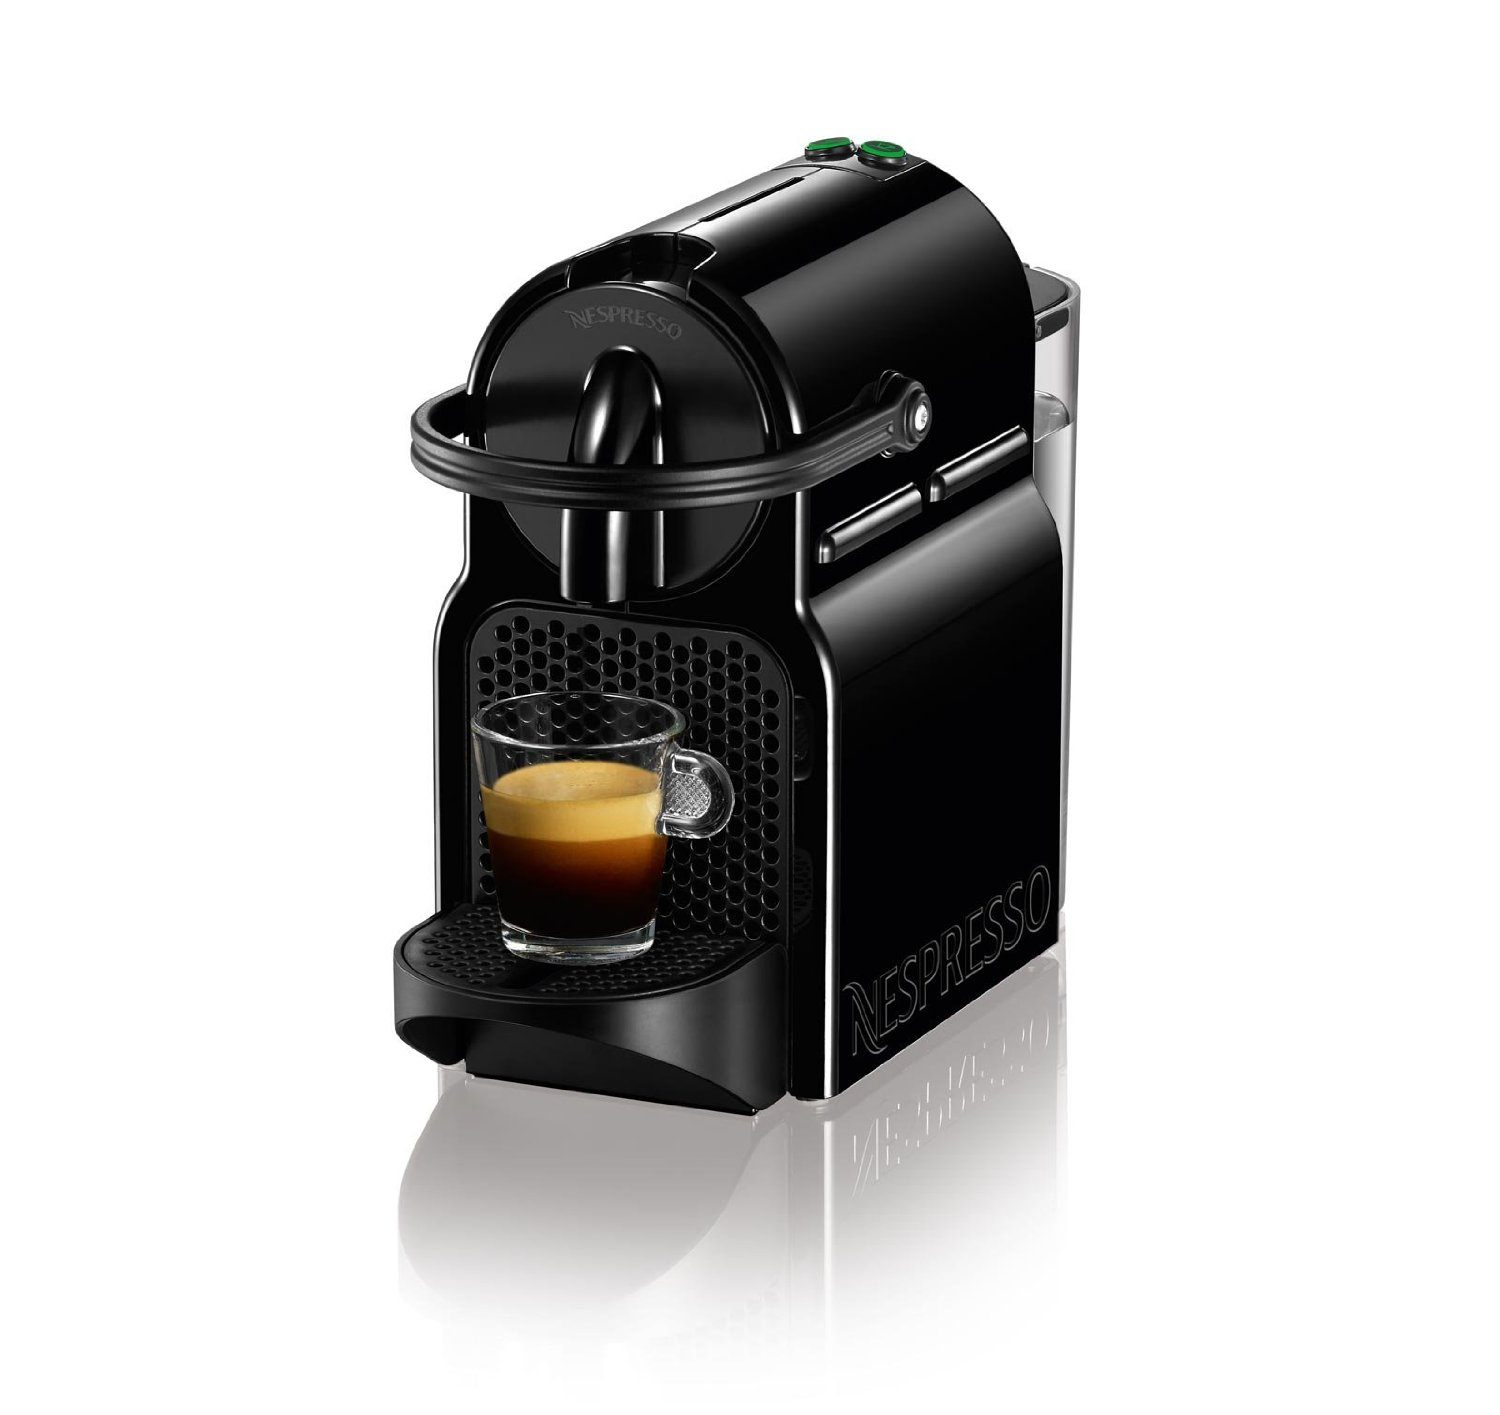 best espresso machine under 200 dollars